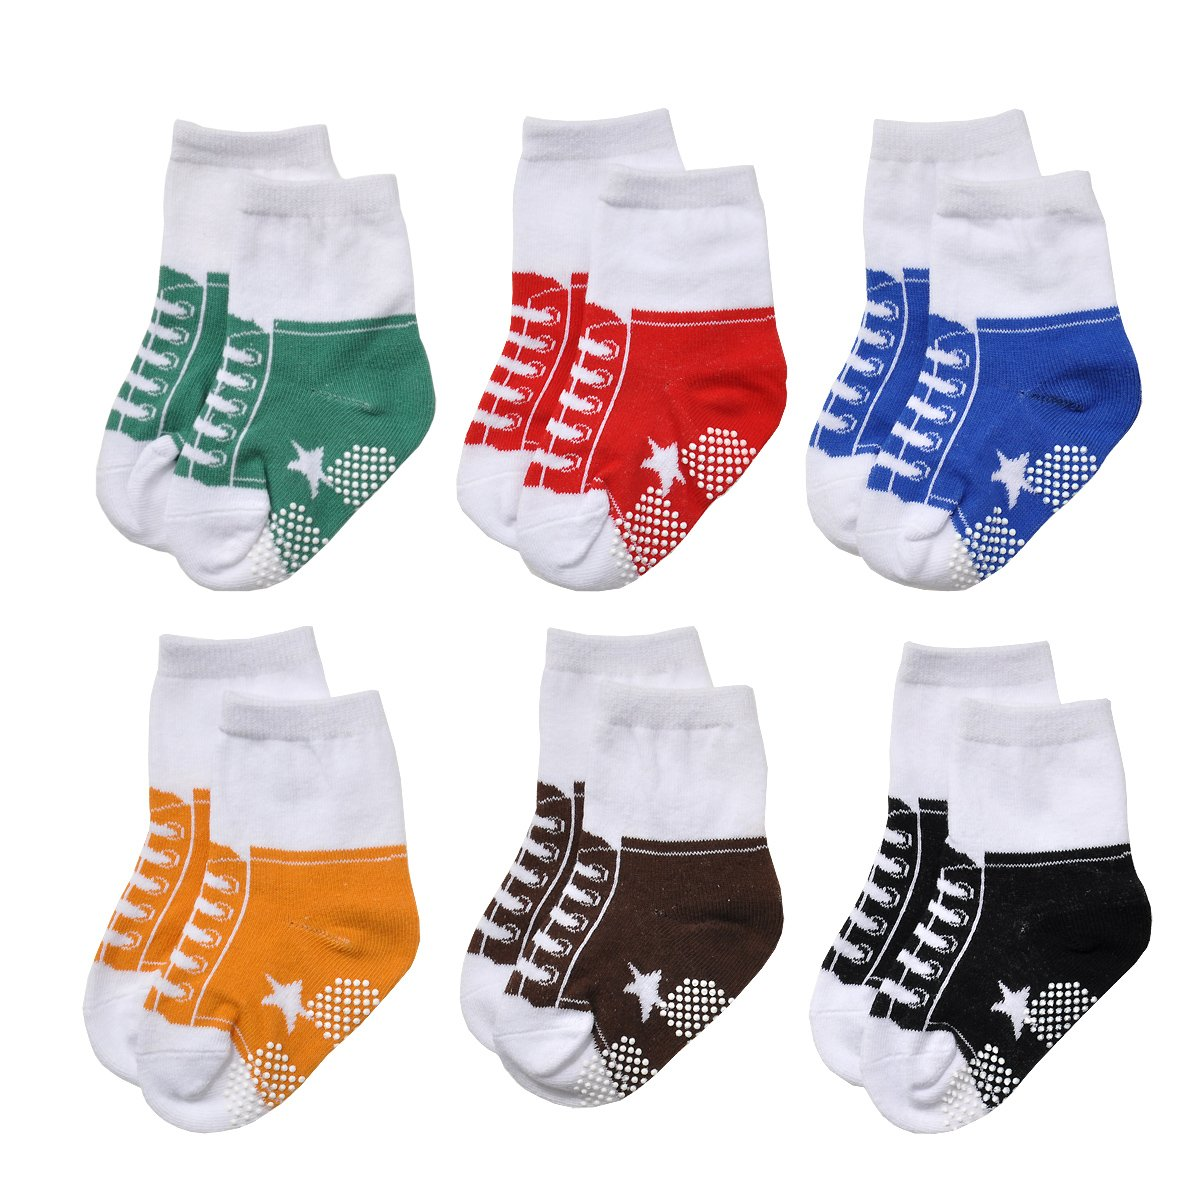 Epeius Unisex Baby Non-Slip Socks Like Shoes Infant Boys/Girls Anti Slip Booties for 0-12 Months (Set of 6),Black/White/Blue/Yellow/Brown/Green